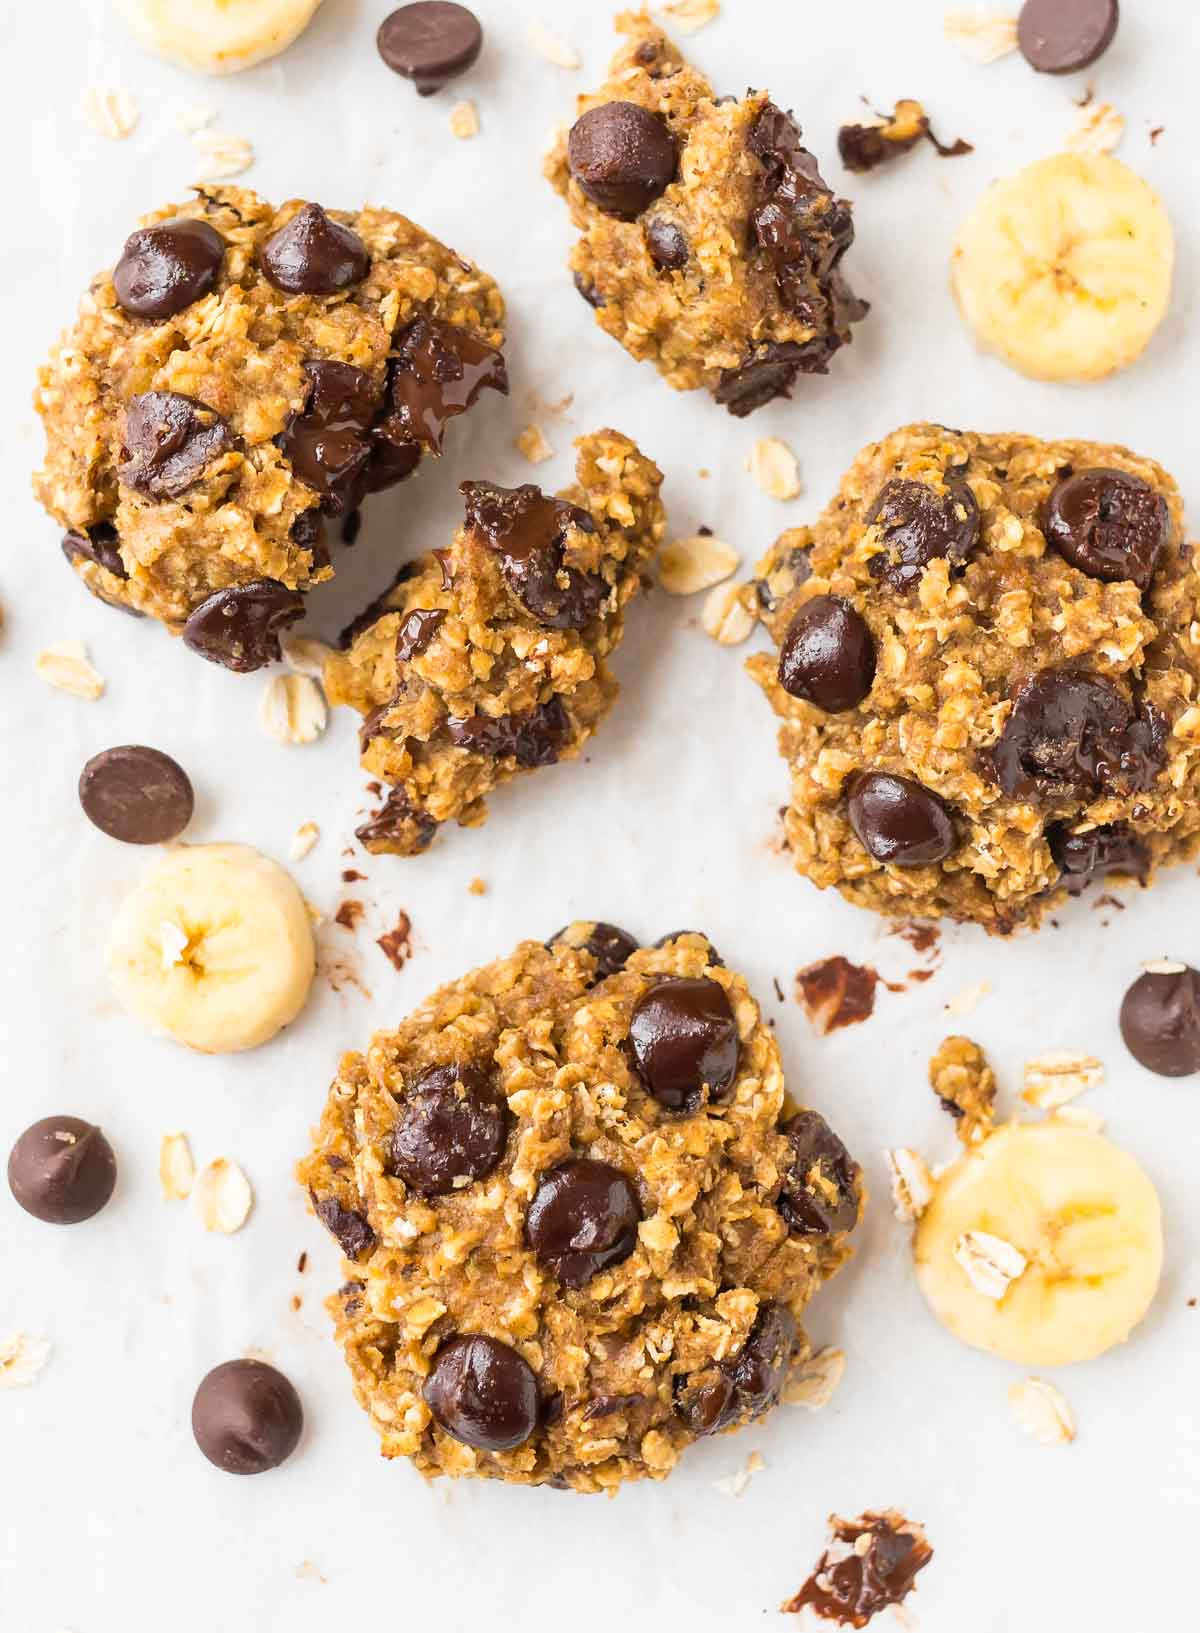 Healthy Banana Chocolate Chip Cookies  Healthy Banana Oatmeal Cookies with Chocolate Chips